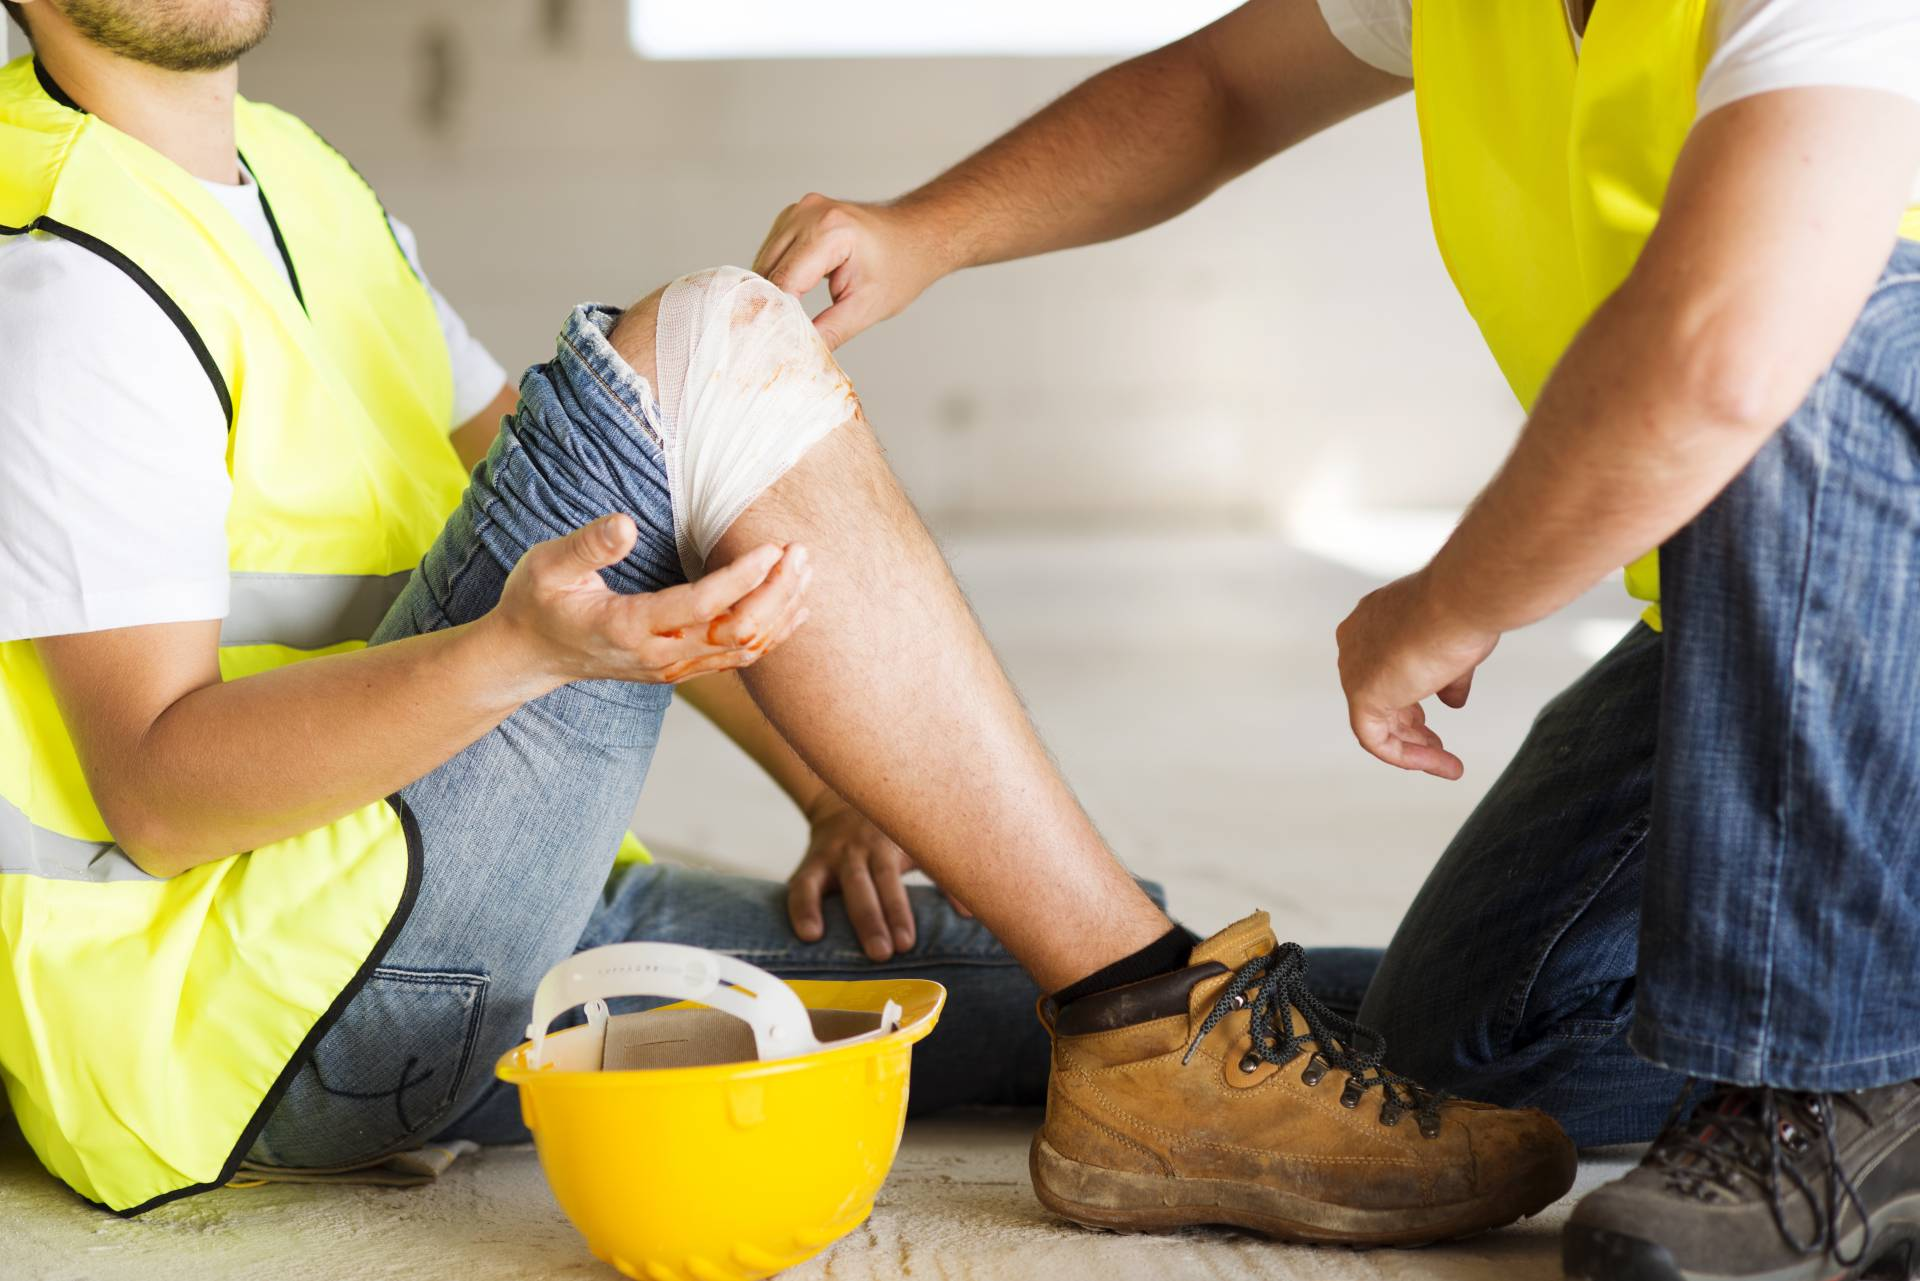 Hurt on the job? Schedule a free consultation with our personal injury lawyers.